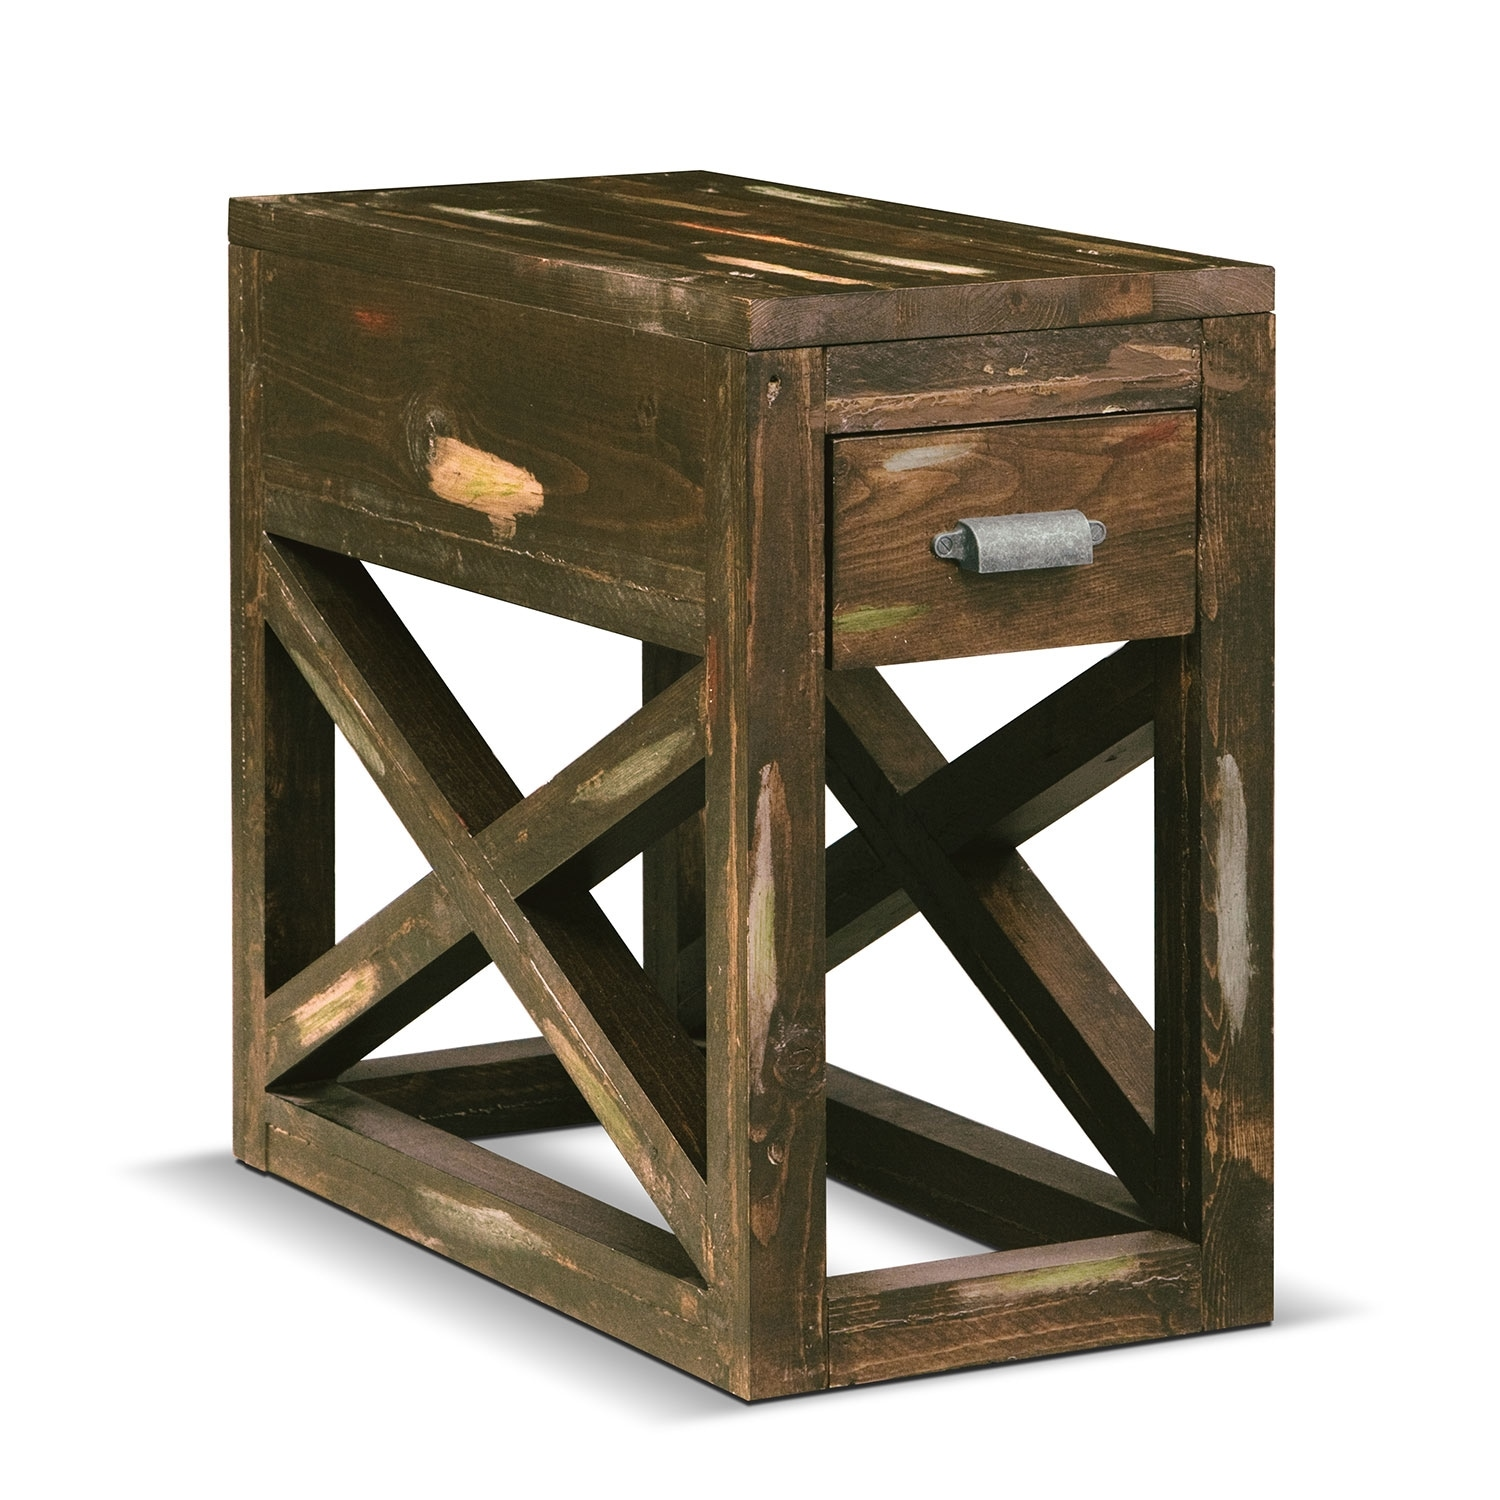 Monterey Chairside Table - Weathered Brown